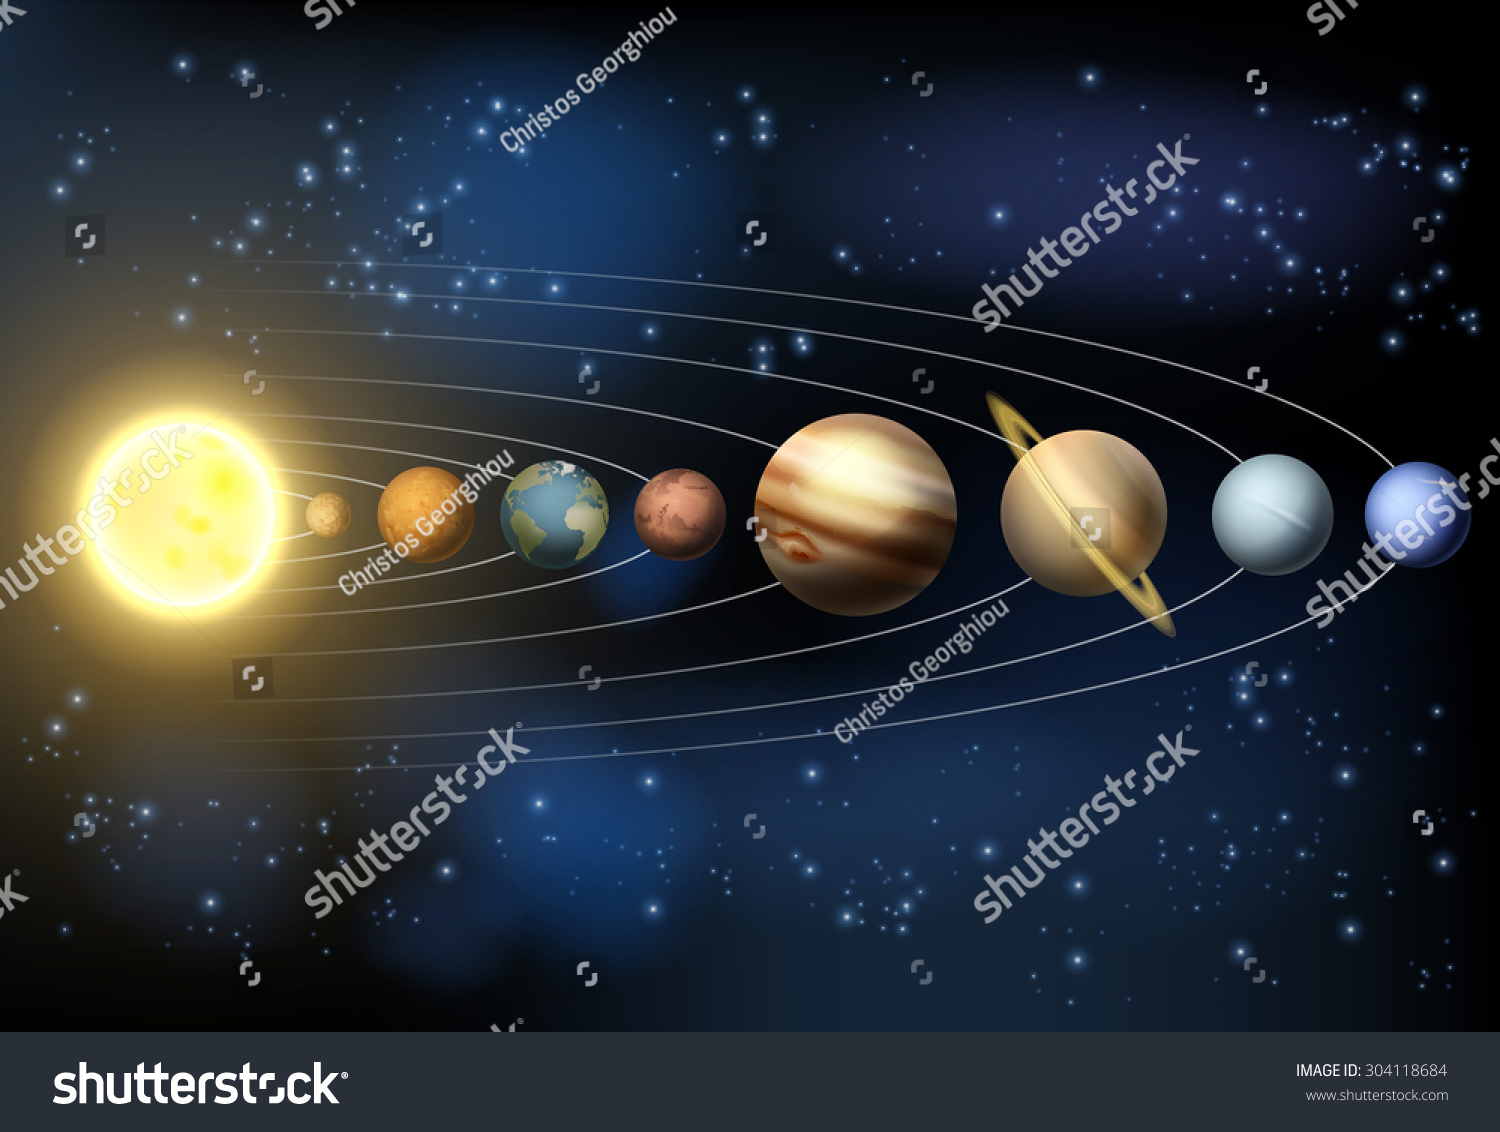 Illustration Planets Our Solar System Orbiting Stock ...